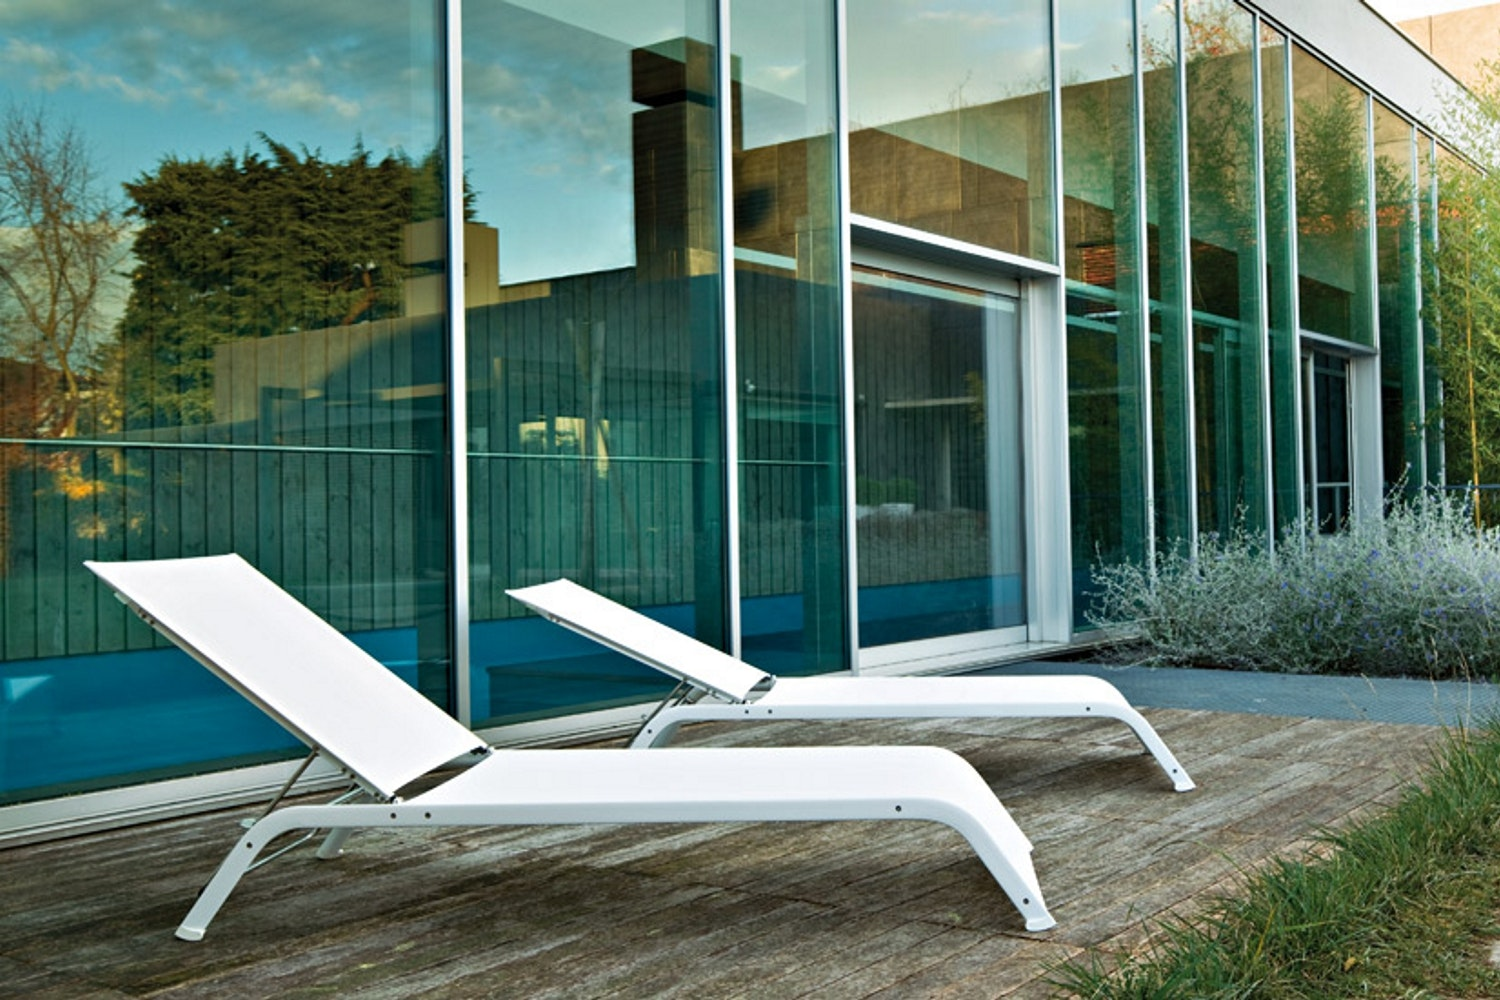 Lazy Sunbed Chaise by Michel Boucquillon for Serralunga